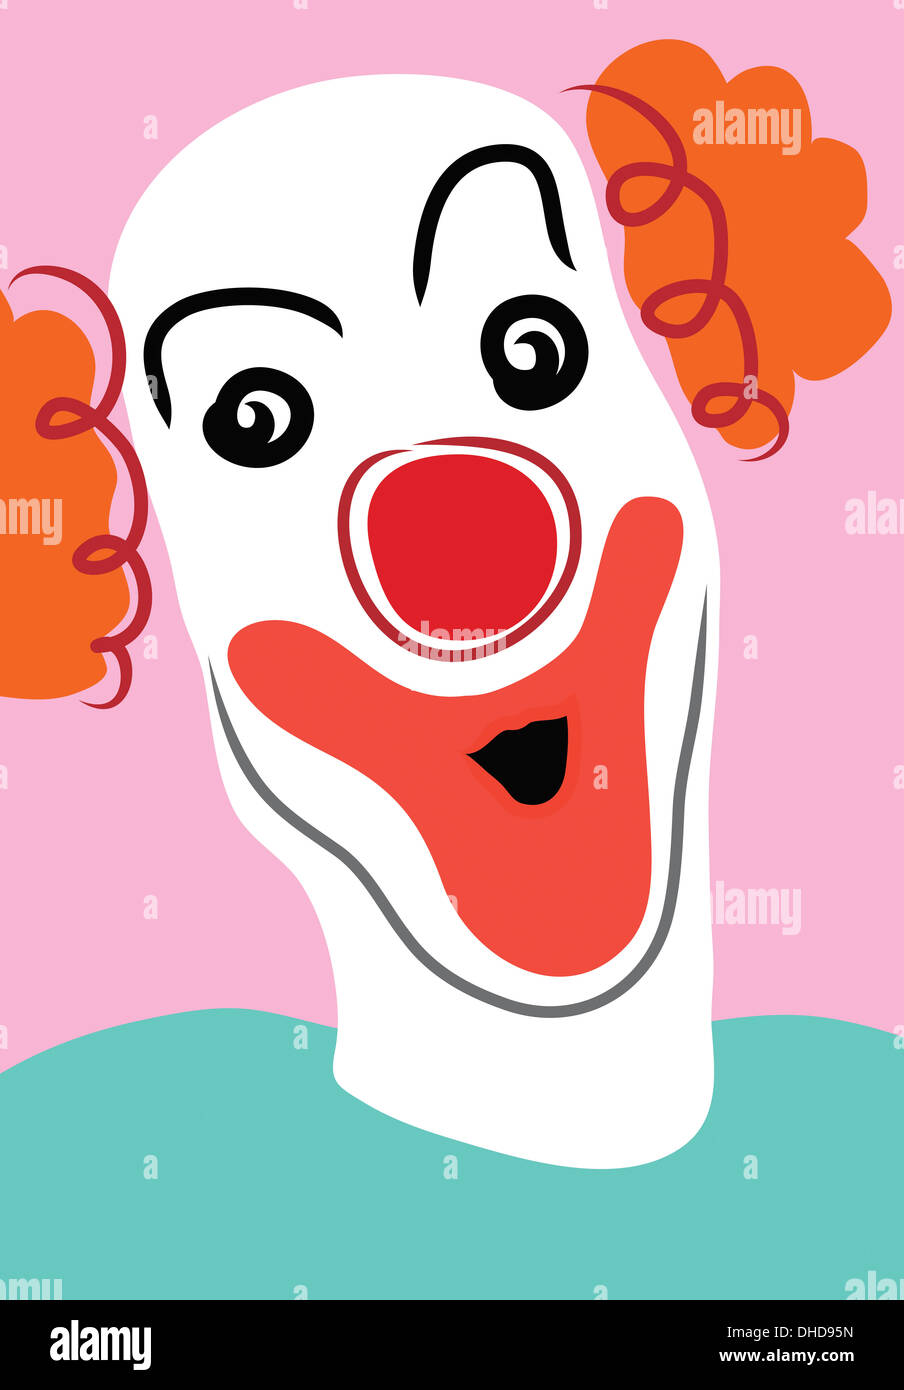 Happy clown with white face mask and red nose on pink background - Stock Image